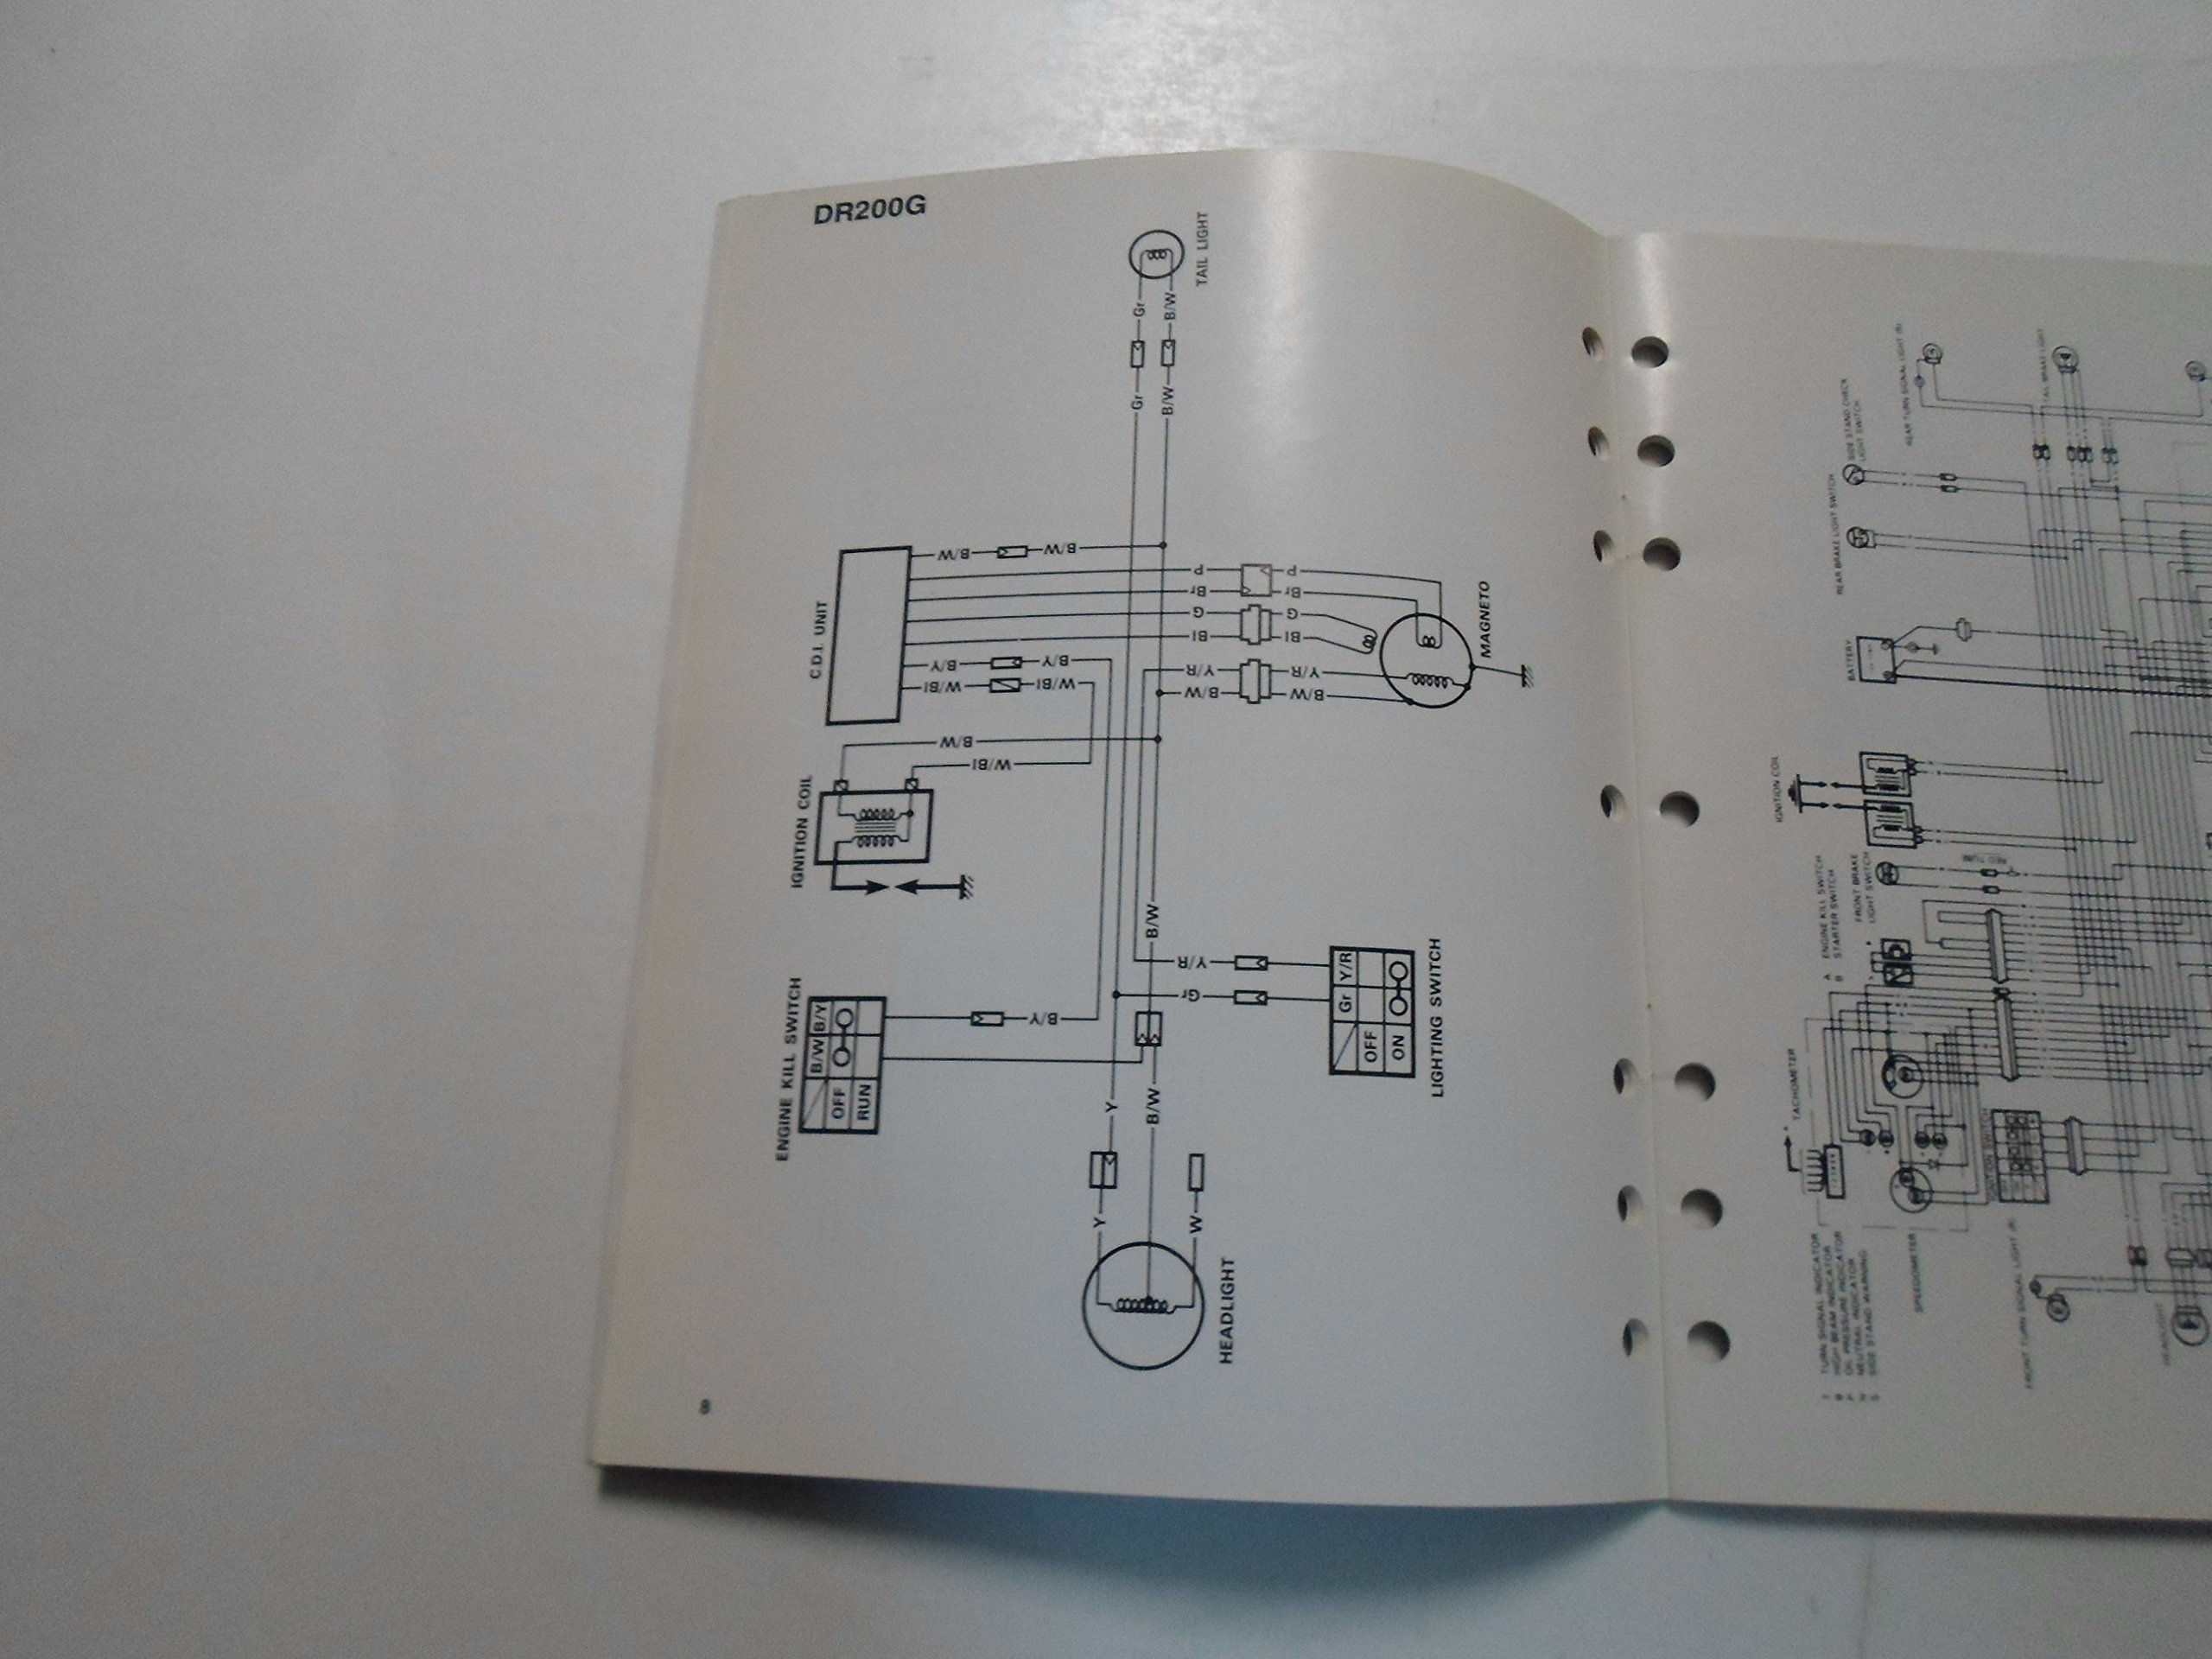 1986 Suzuki Motorcycle Atv G Models Wiring Diagrams Manual Minor Electrical Diagram Of 1992 Vs800 Intruder For Us And Canada Part 2 Wear Books